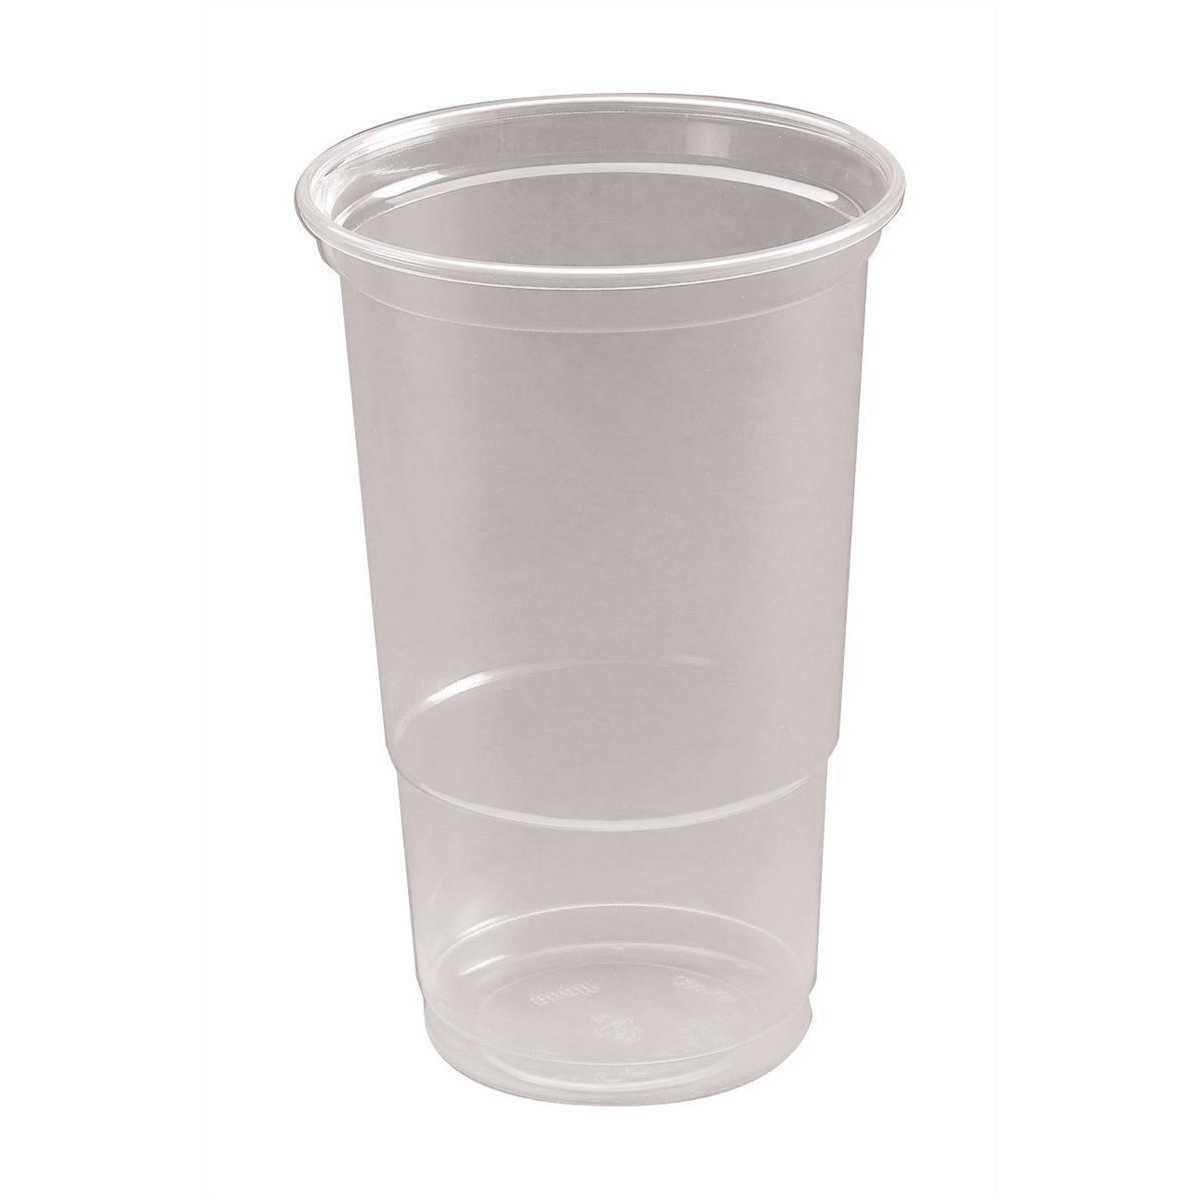 Pint Tumbler CE Marked Polypropylene 19.2oz 568ml Clear Ref 30011 Pack 50